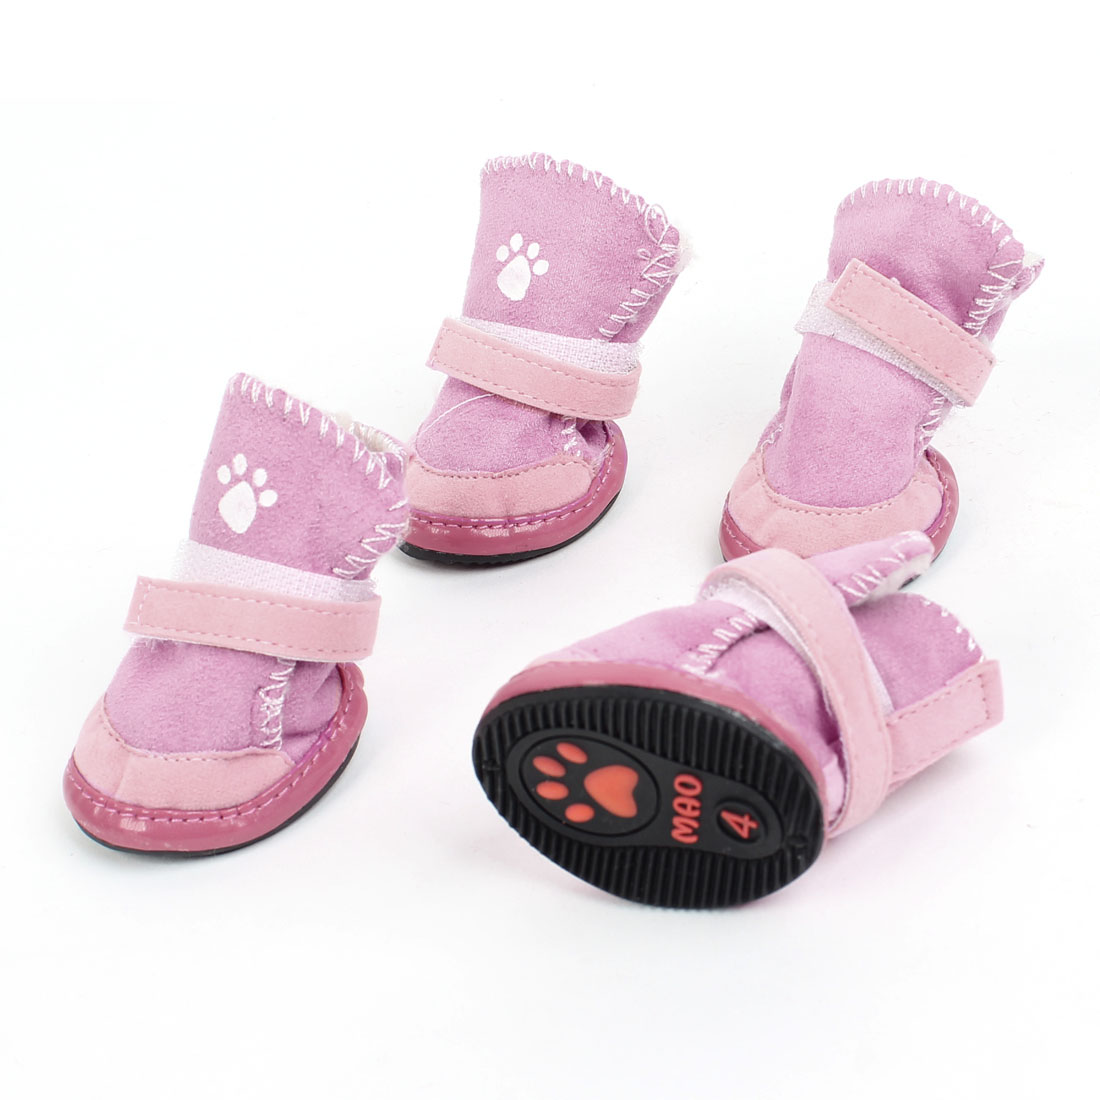 2 Pairs Pink Hook Loop Fastener Paw Printed Pet Dog Yorkie Shoes Booties Boots XS